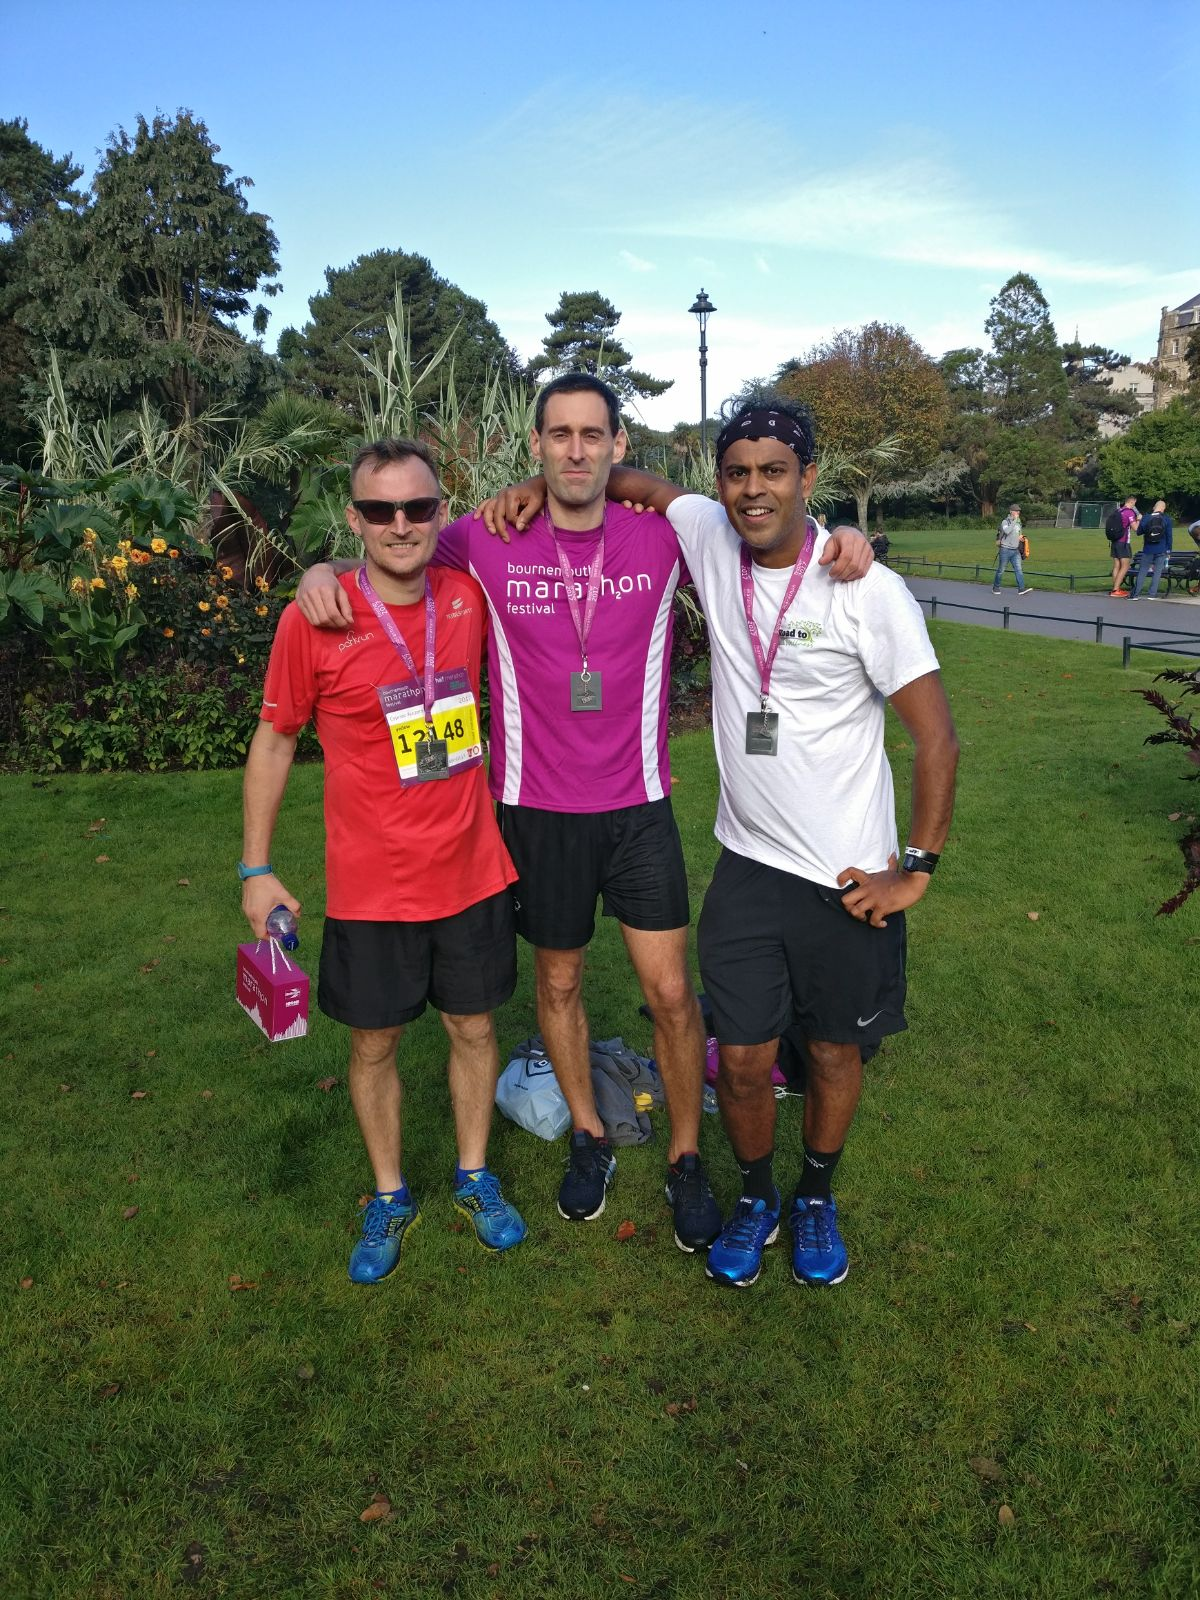 Poole doctor dons running shoes in aid of health awards